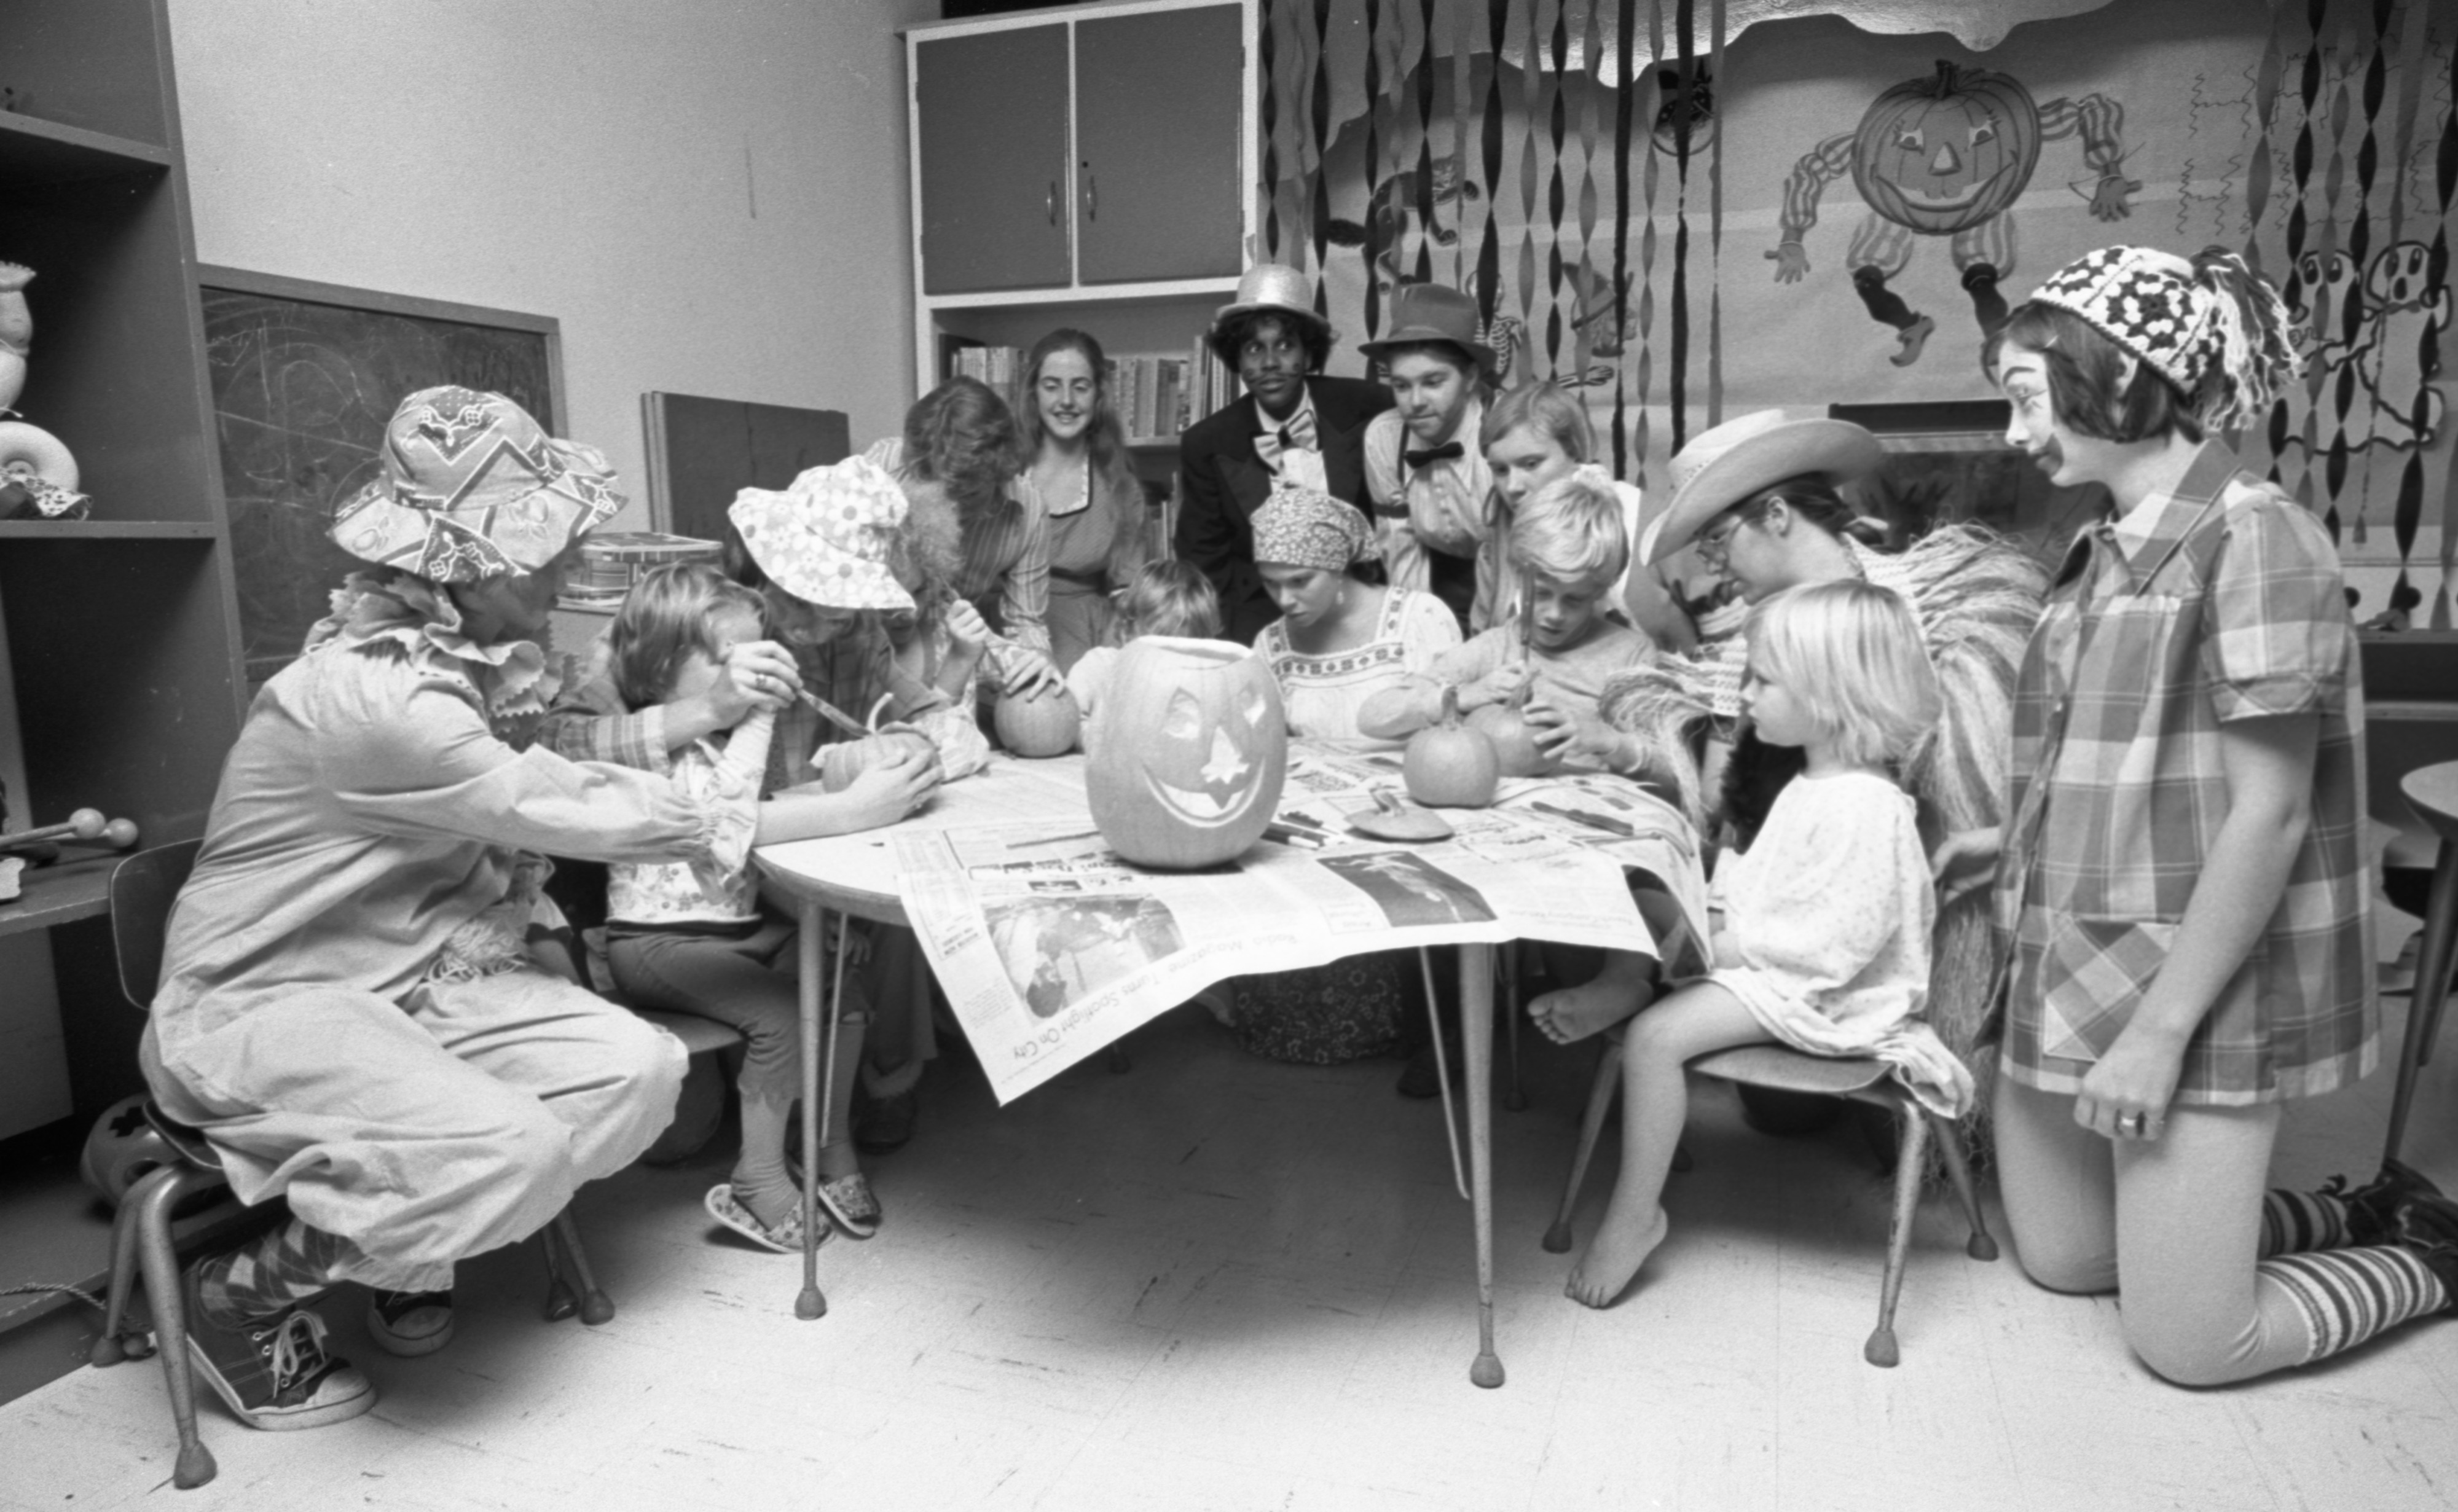 St. Joseph Mercy Hospital Pediatric Patients Celebrate Halloween With Girl Scout Troop 139, October 1975 image